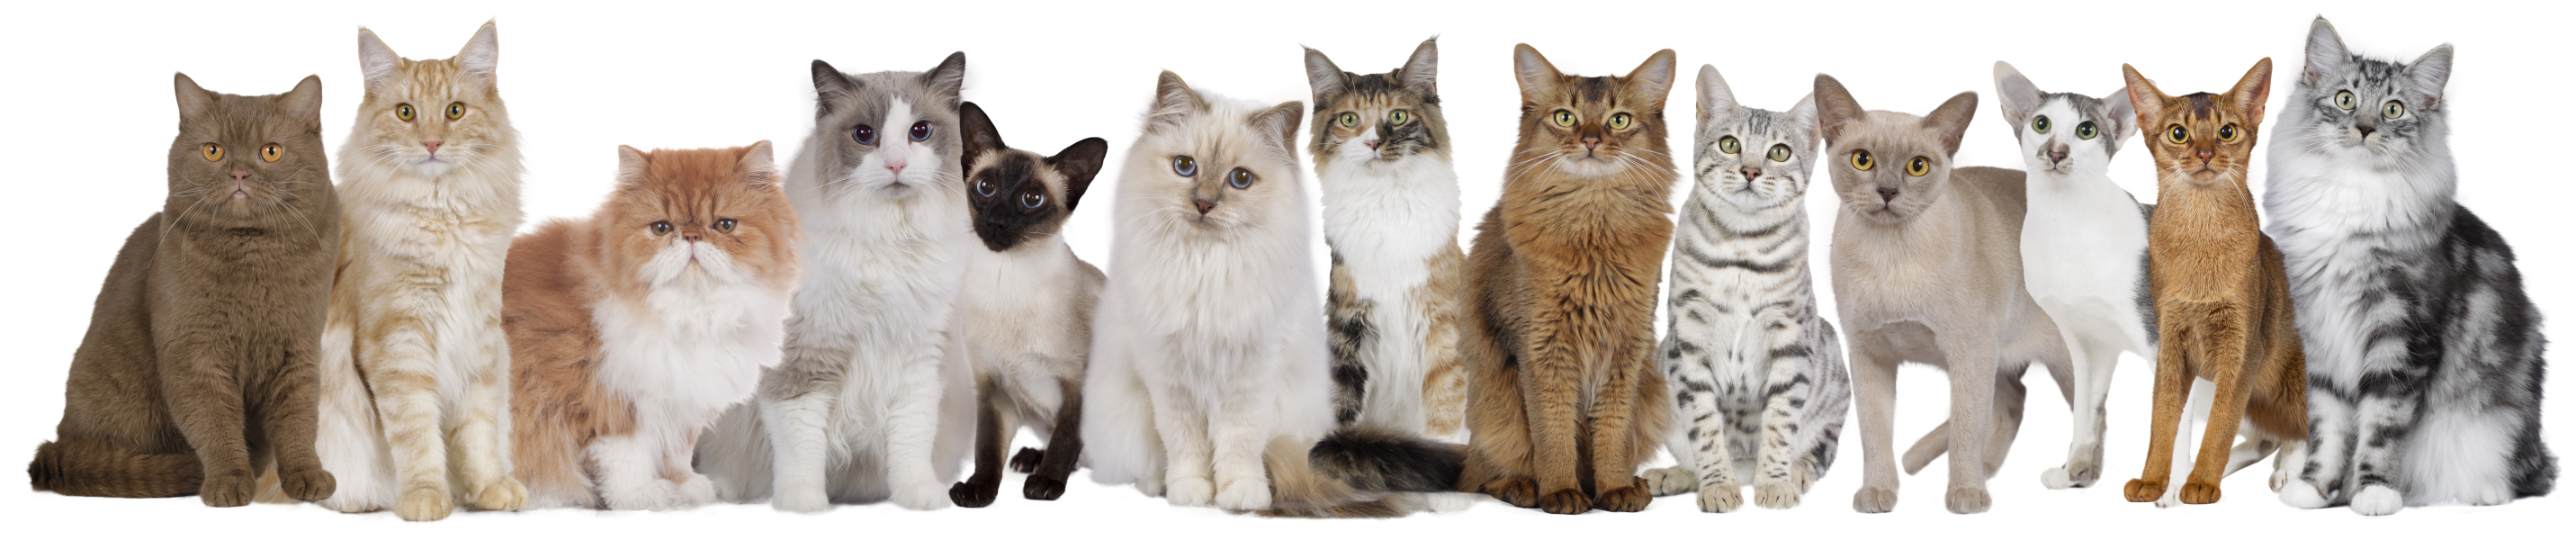 Large group of cats of different breeds and colors